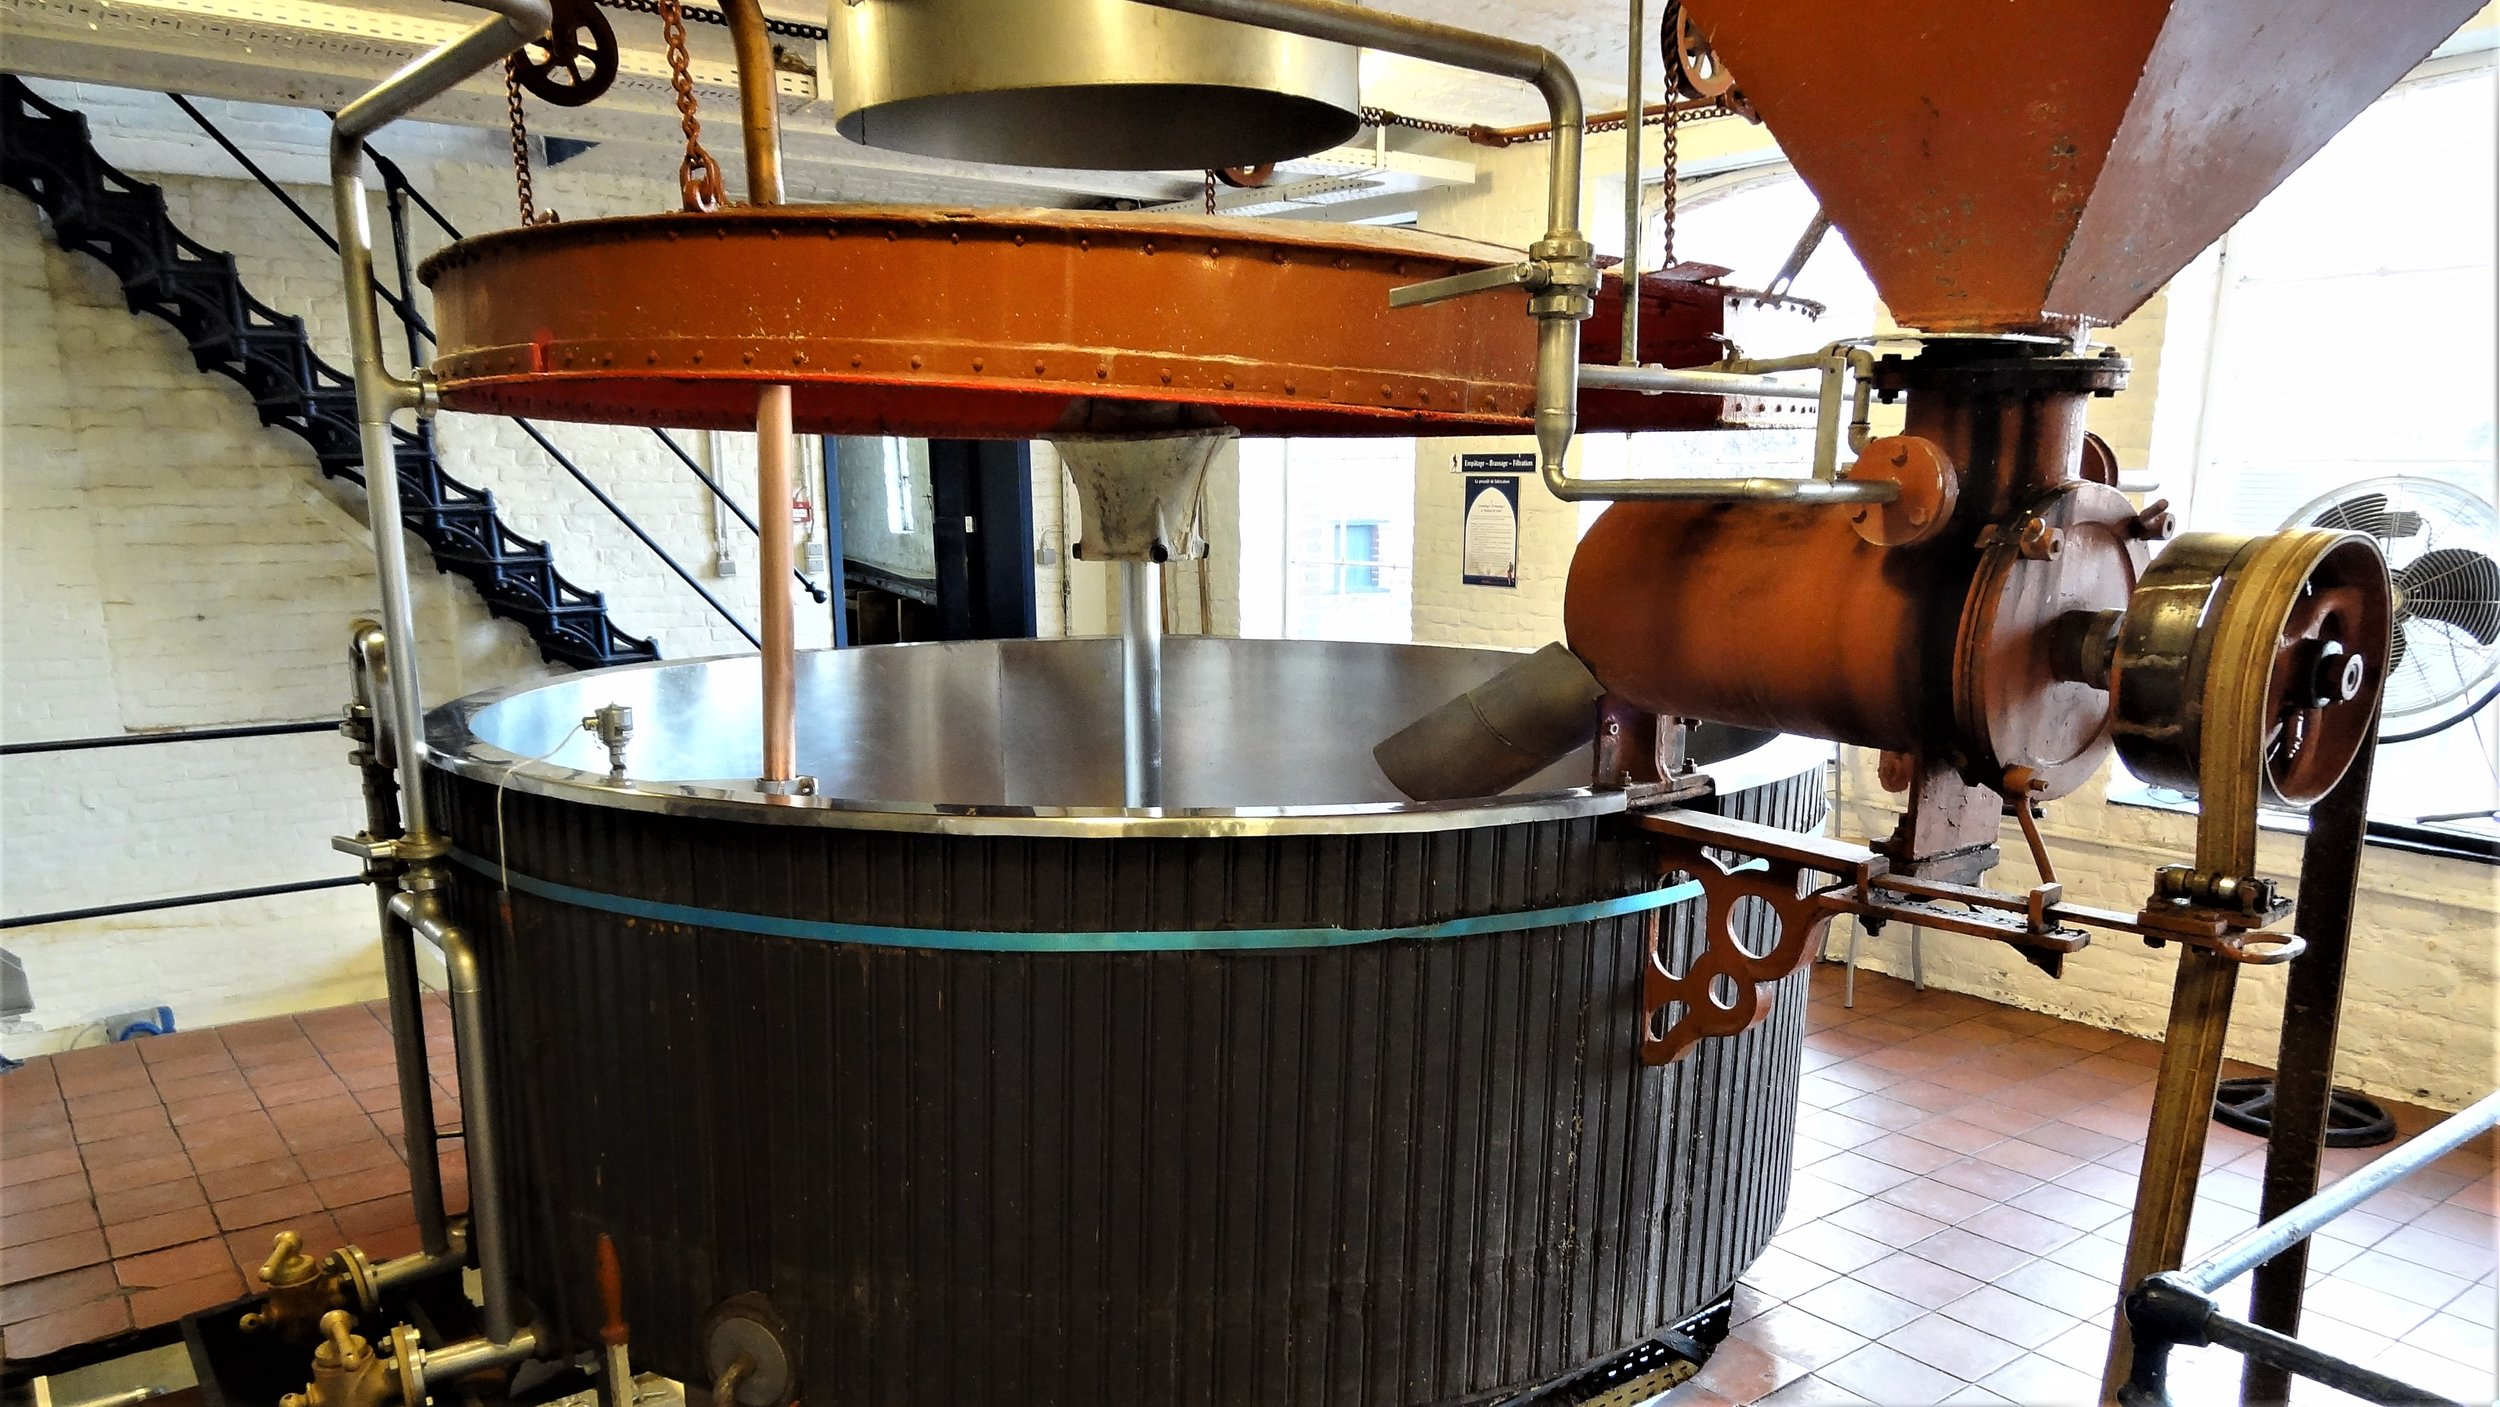 The old mash tun at St. Feuillien.